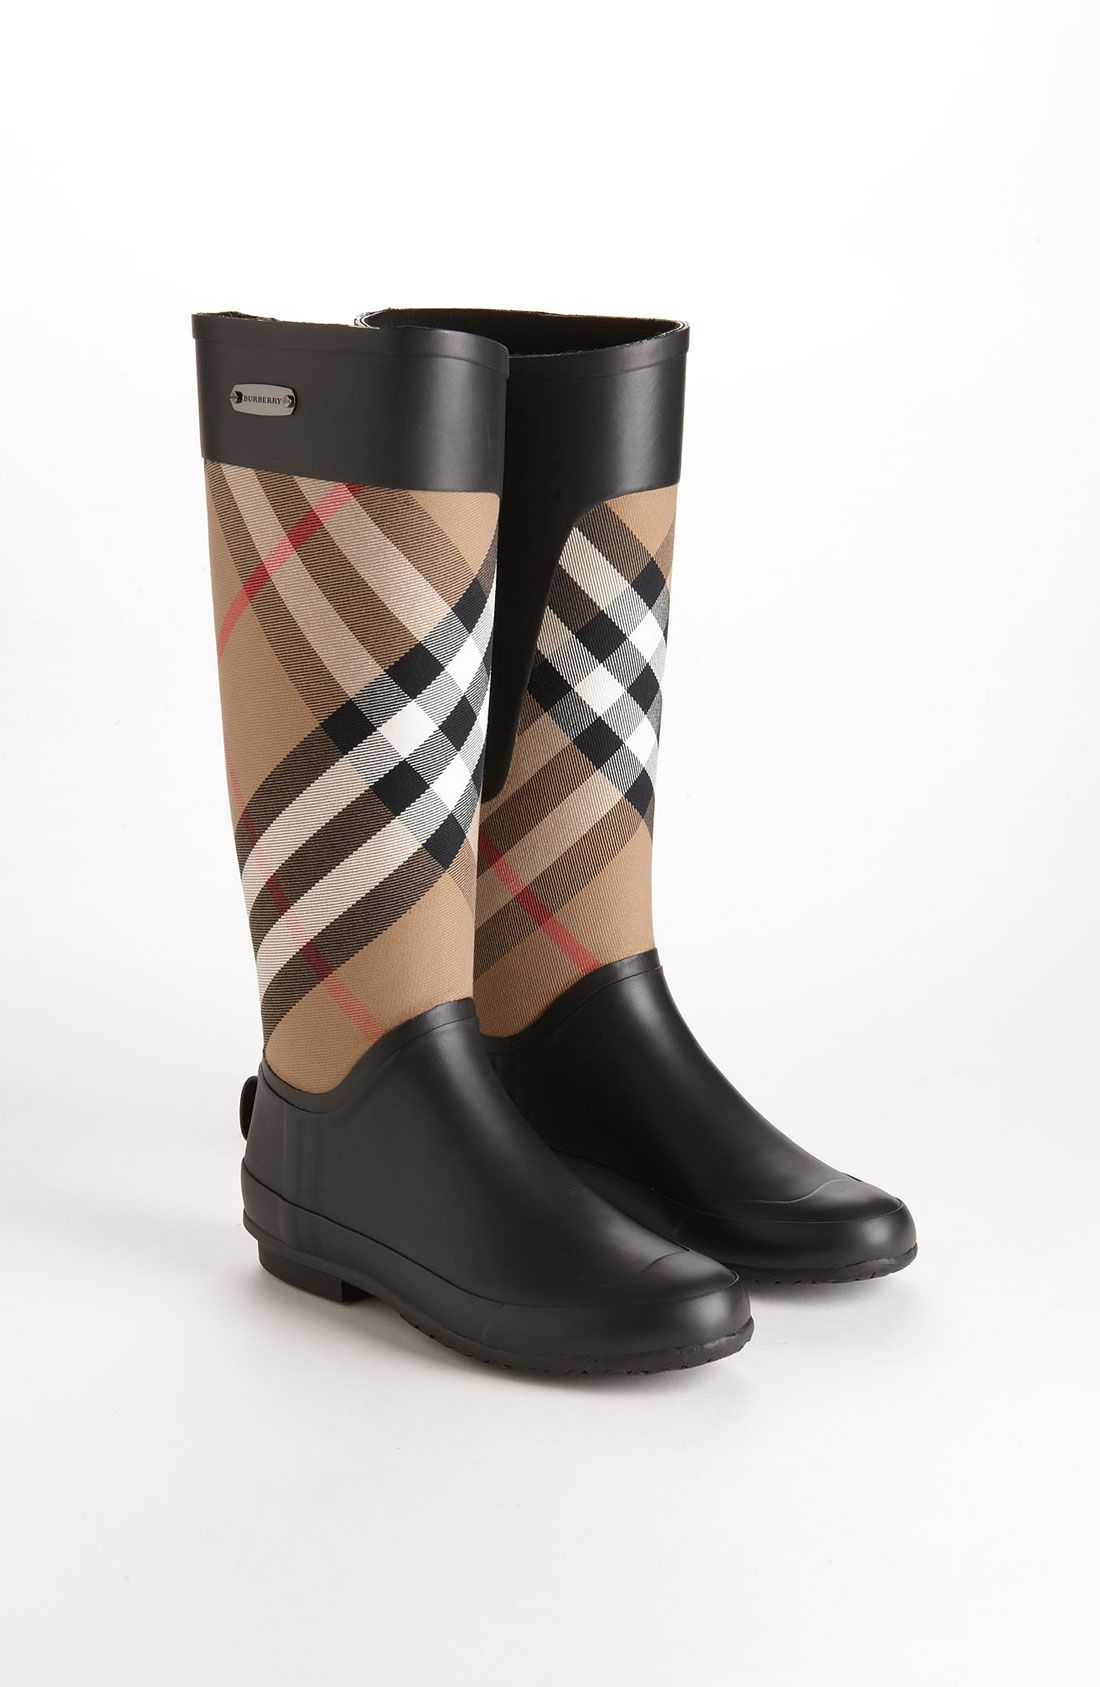 3de90f52cf0 Perfect for puddle jumping! Love these Burberry rain boots ...